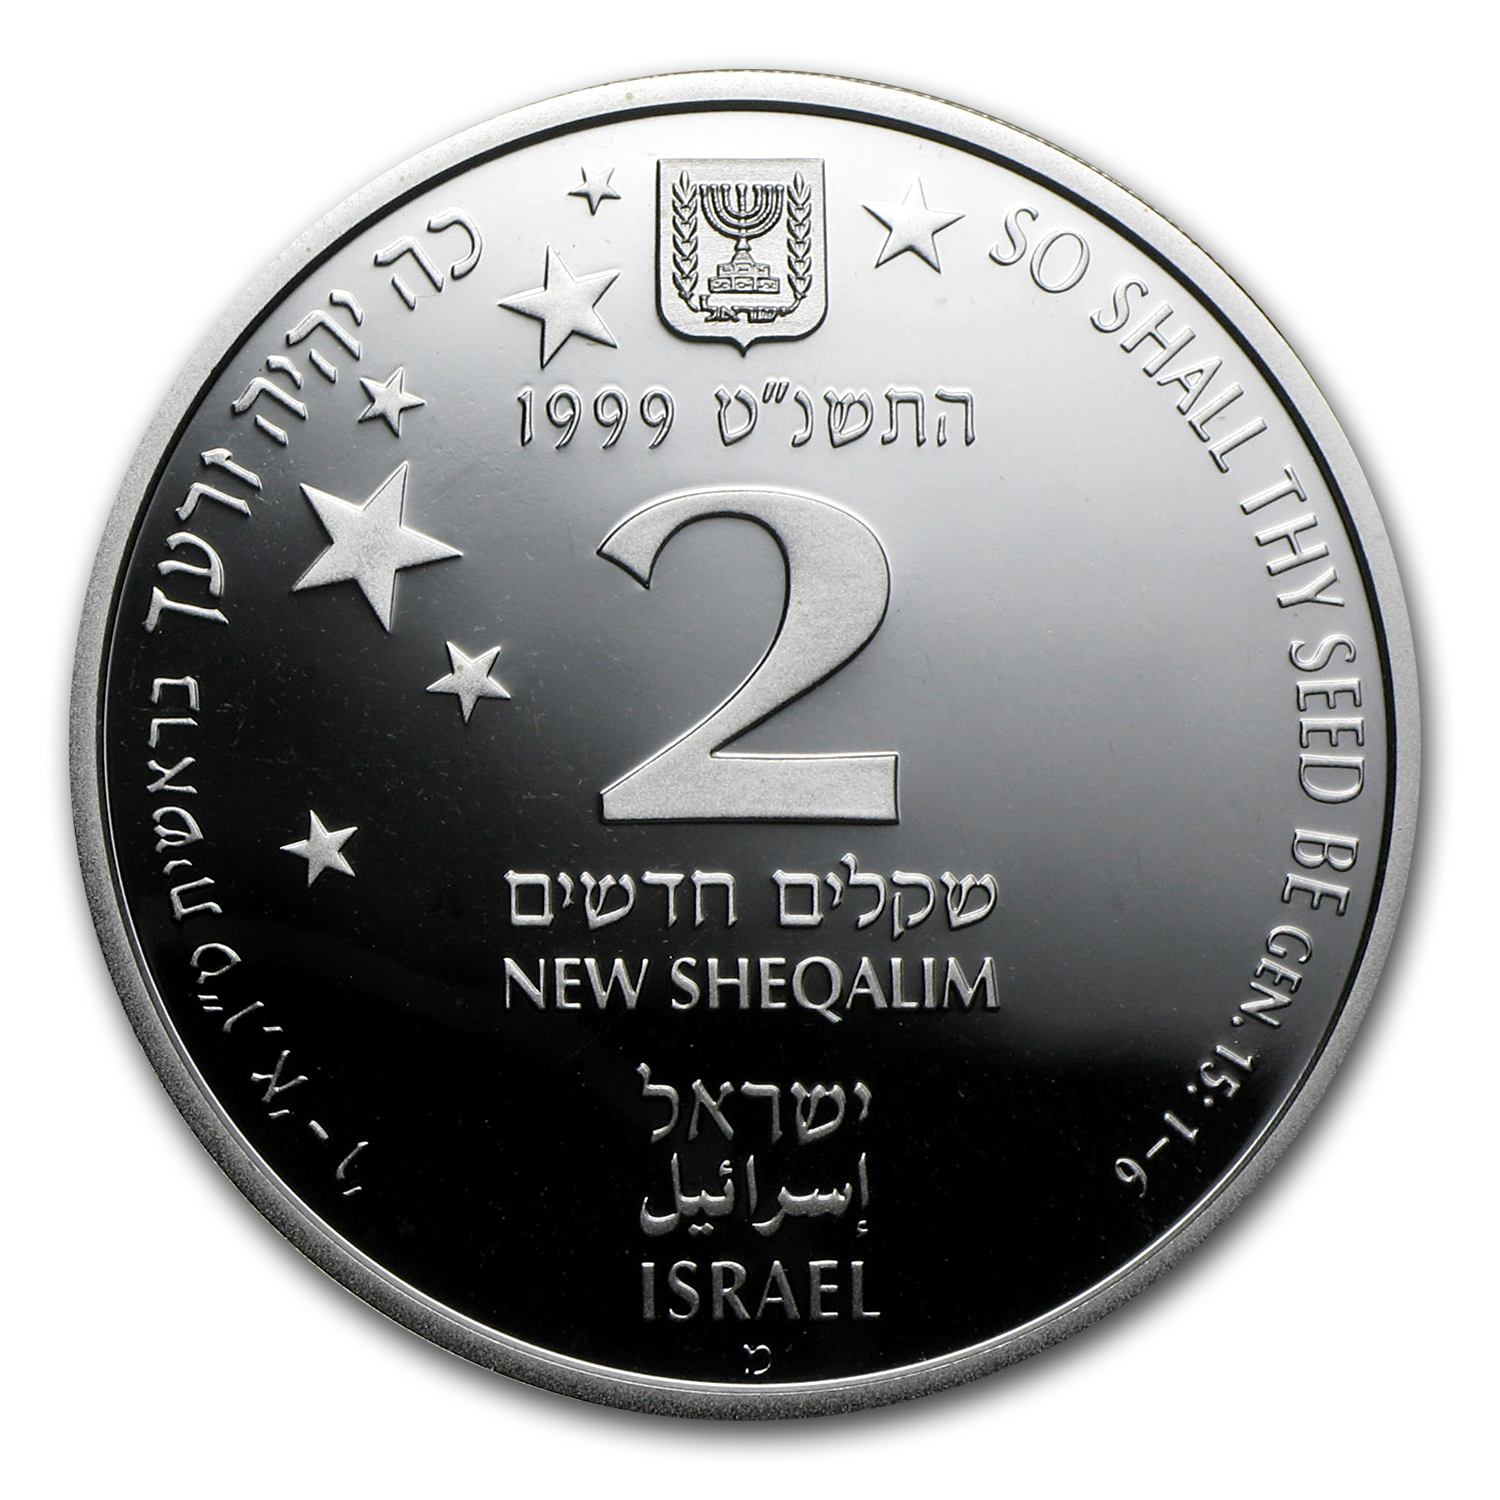 1999 Israel Silver 2 NIS Stars Over the Holy Land Proof